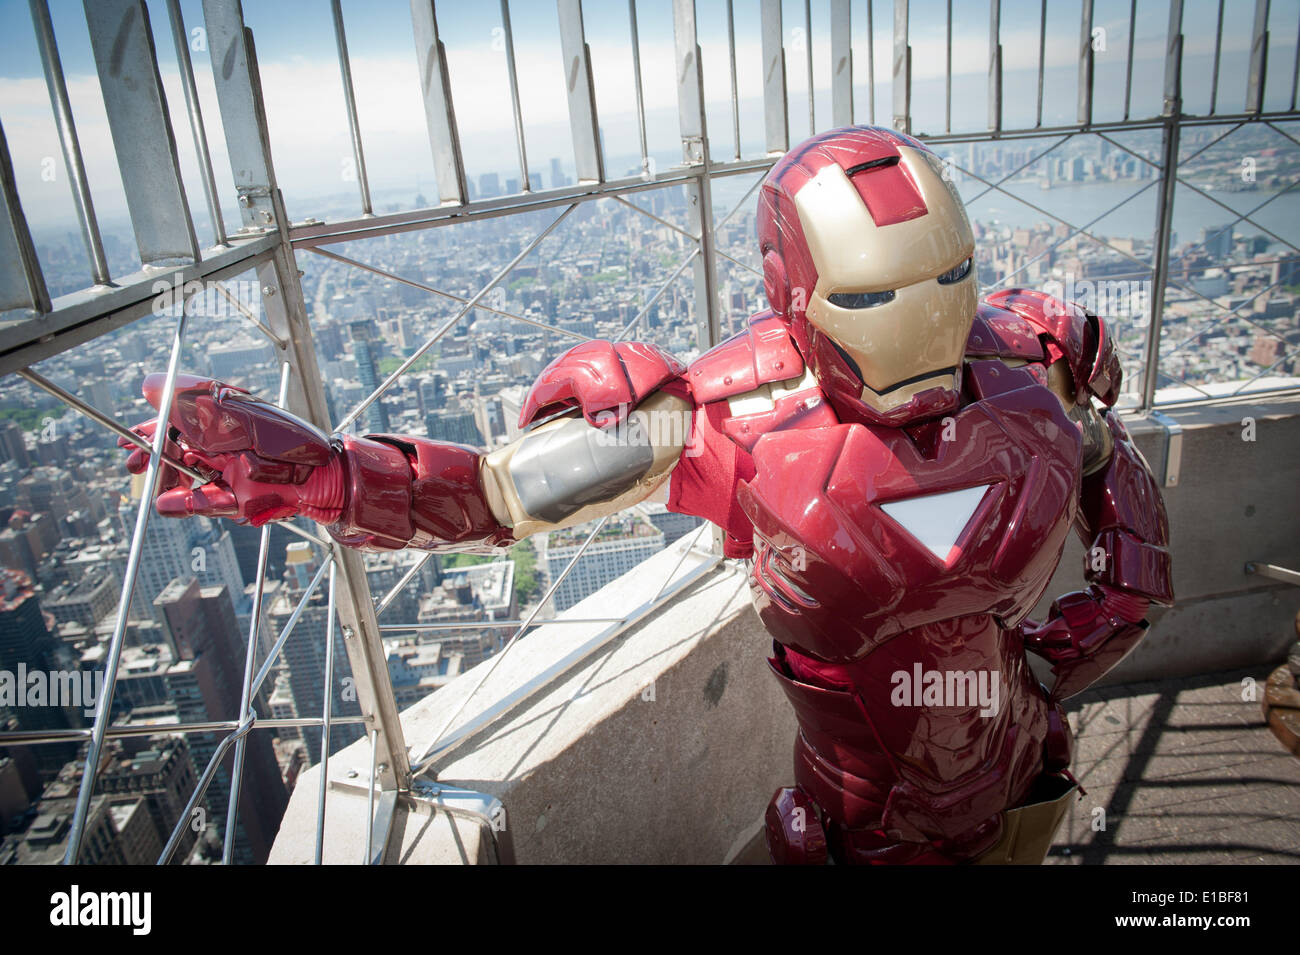 Manhattan, Nueva York, Estados Unidos. 29 de mayo de 2014. El actor vestido como personaje de Iron Man durante el evento del centenario de PAL en el Empire State Building. © Bryan Smith/ZUMAPRESS.com/Alamy Live News Imagen De Stock